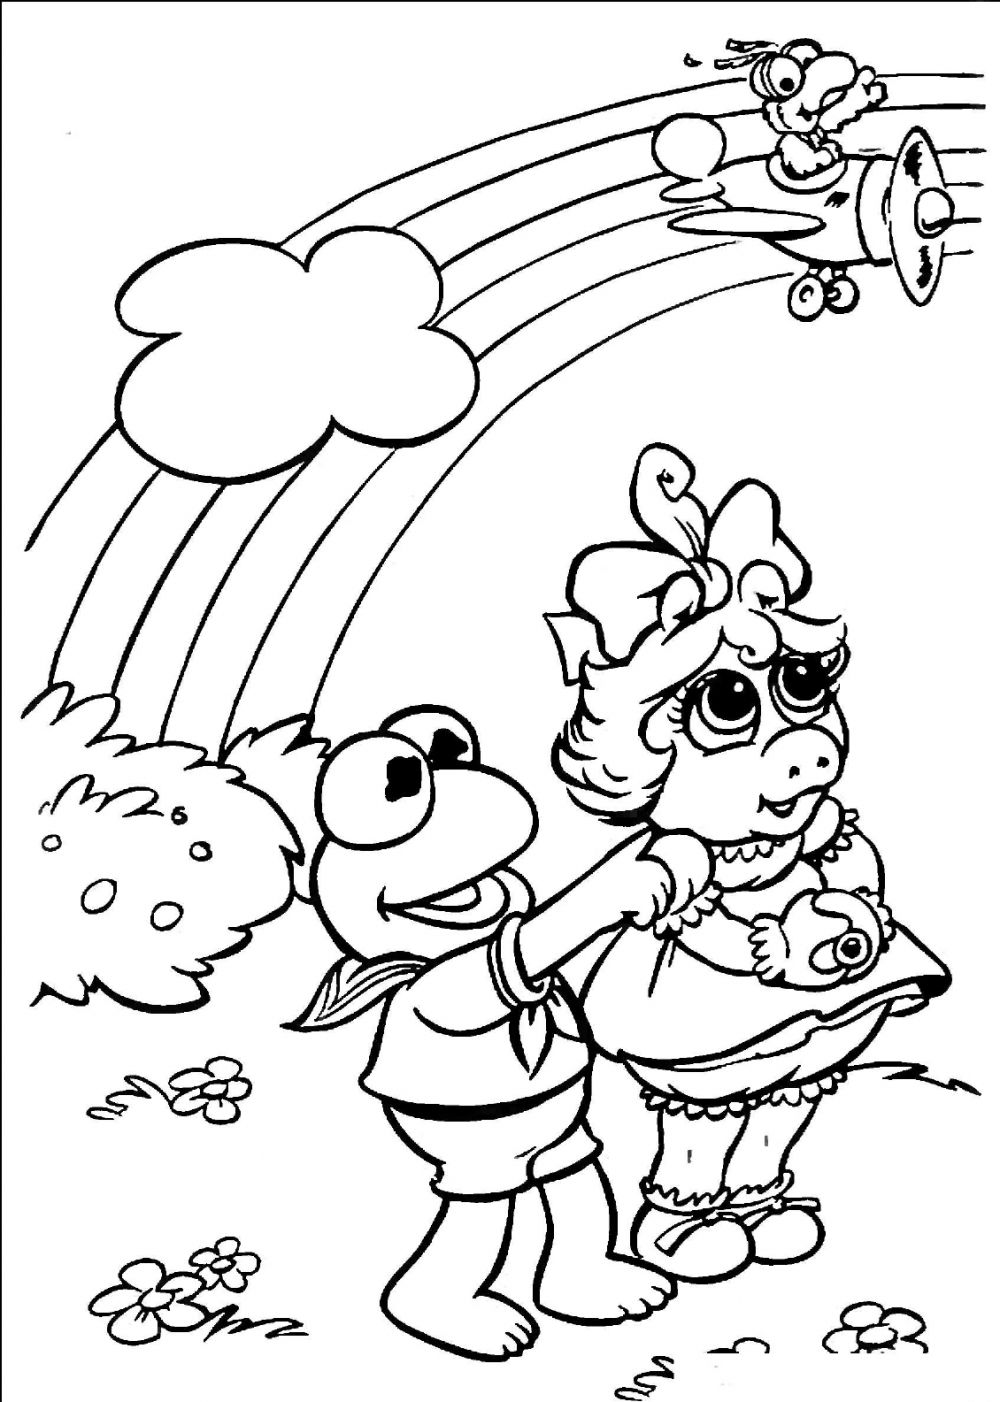 magic coloring page magic to color for children turtles magic coloring coloring magic page